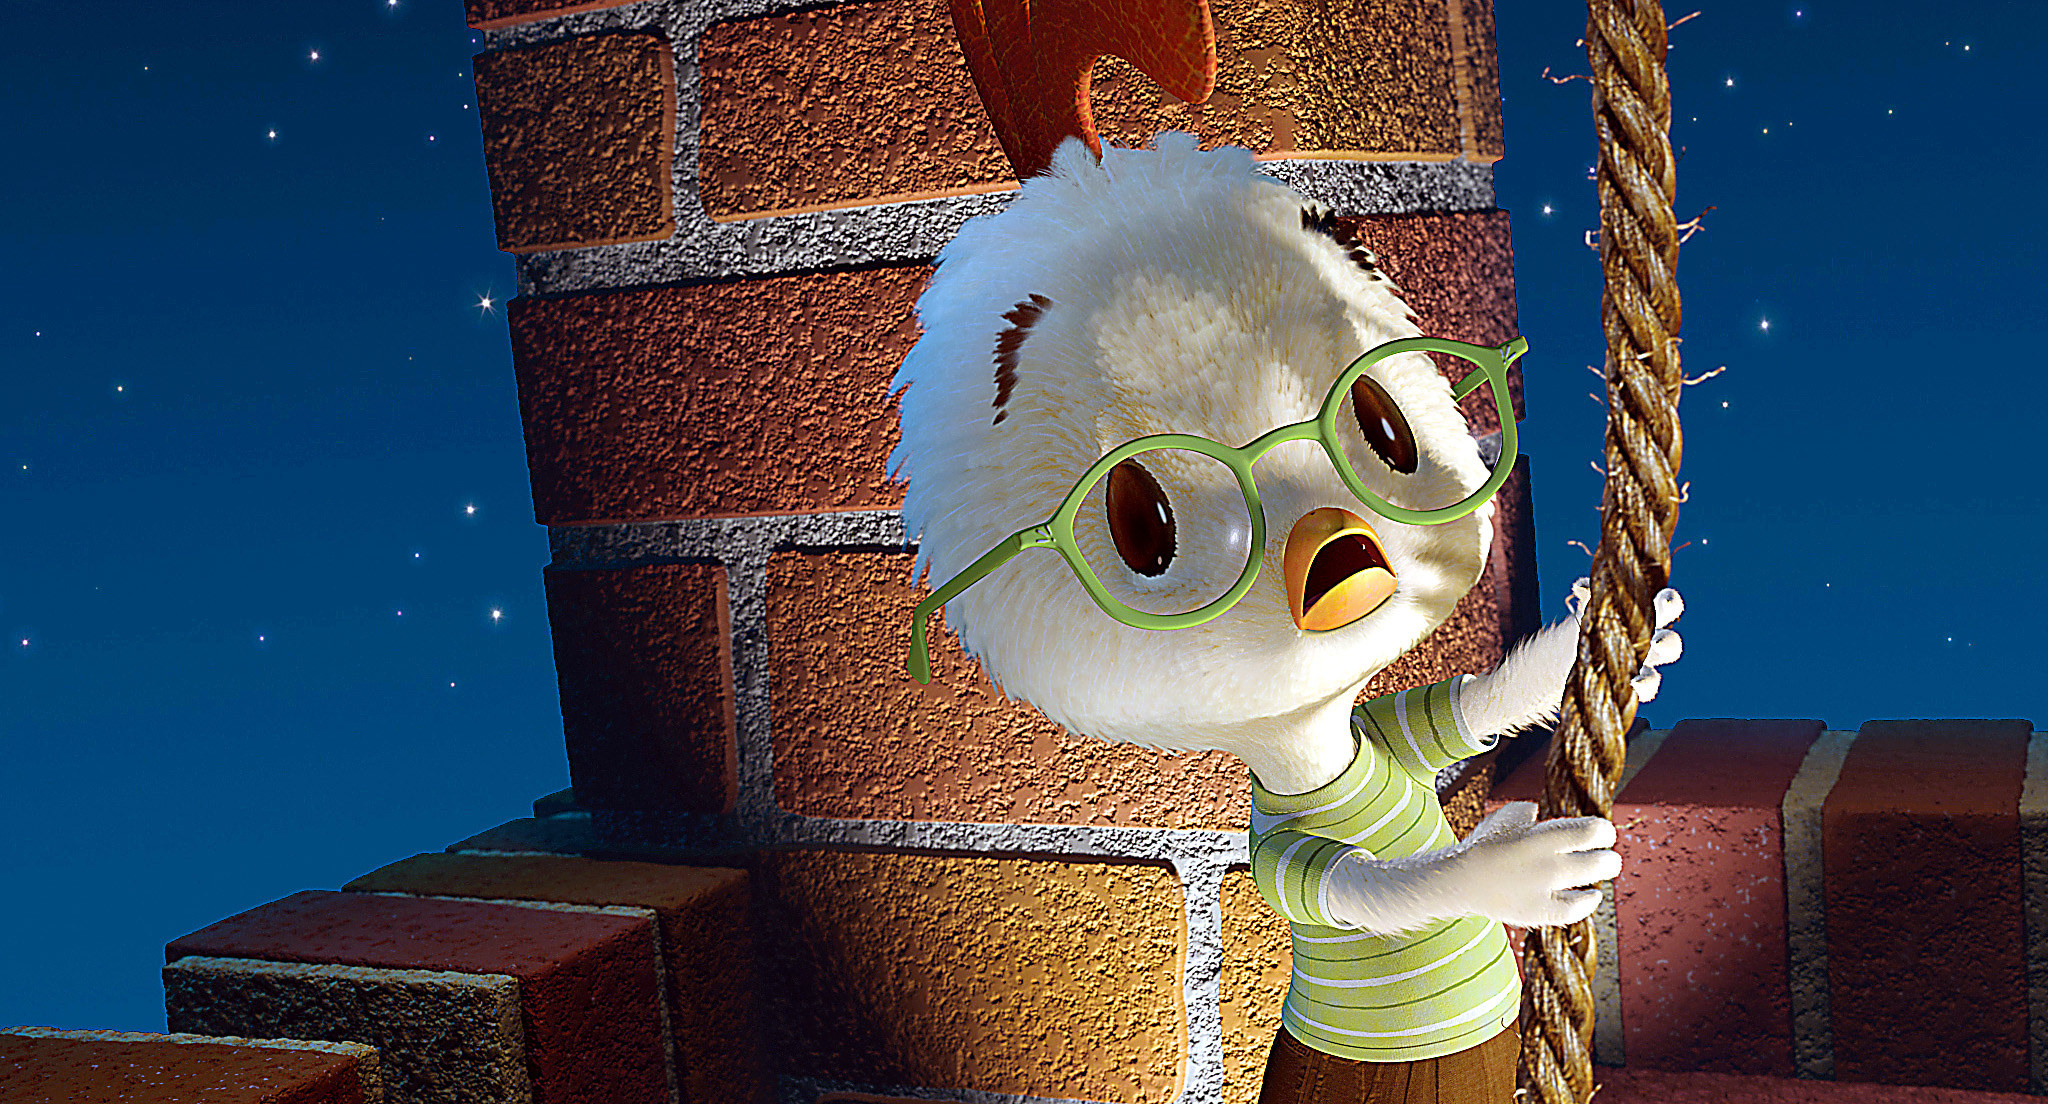 Chicken Little holding onto a rope